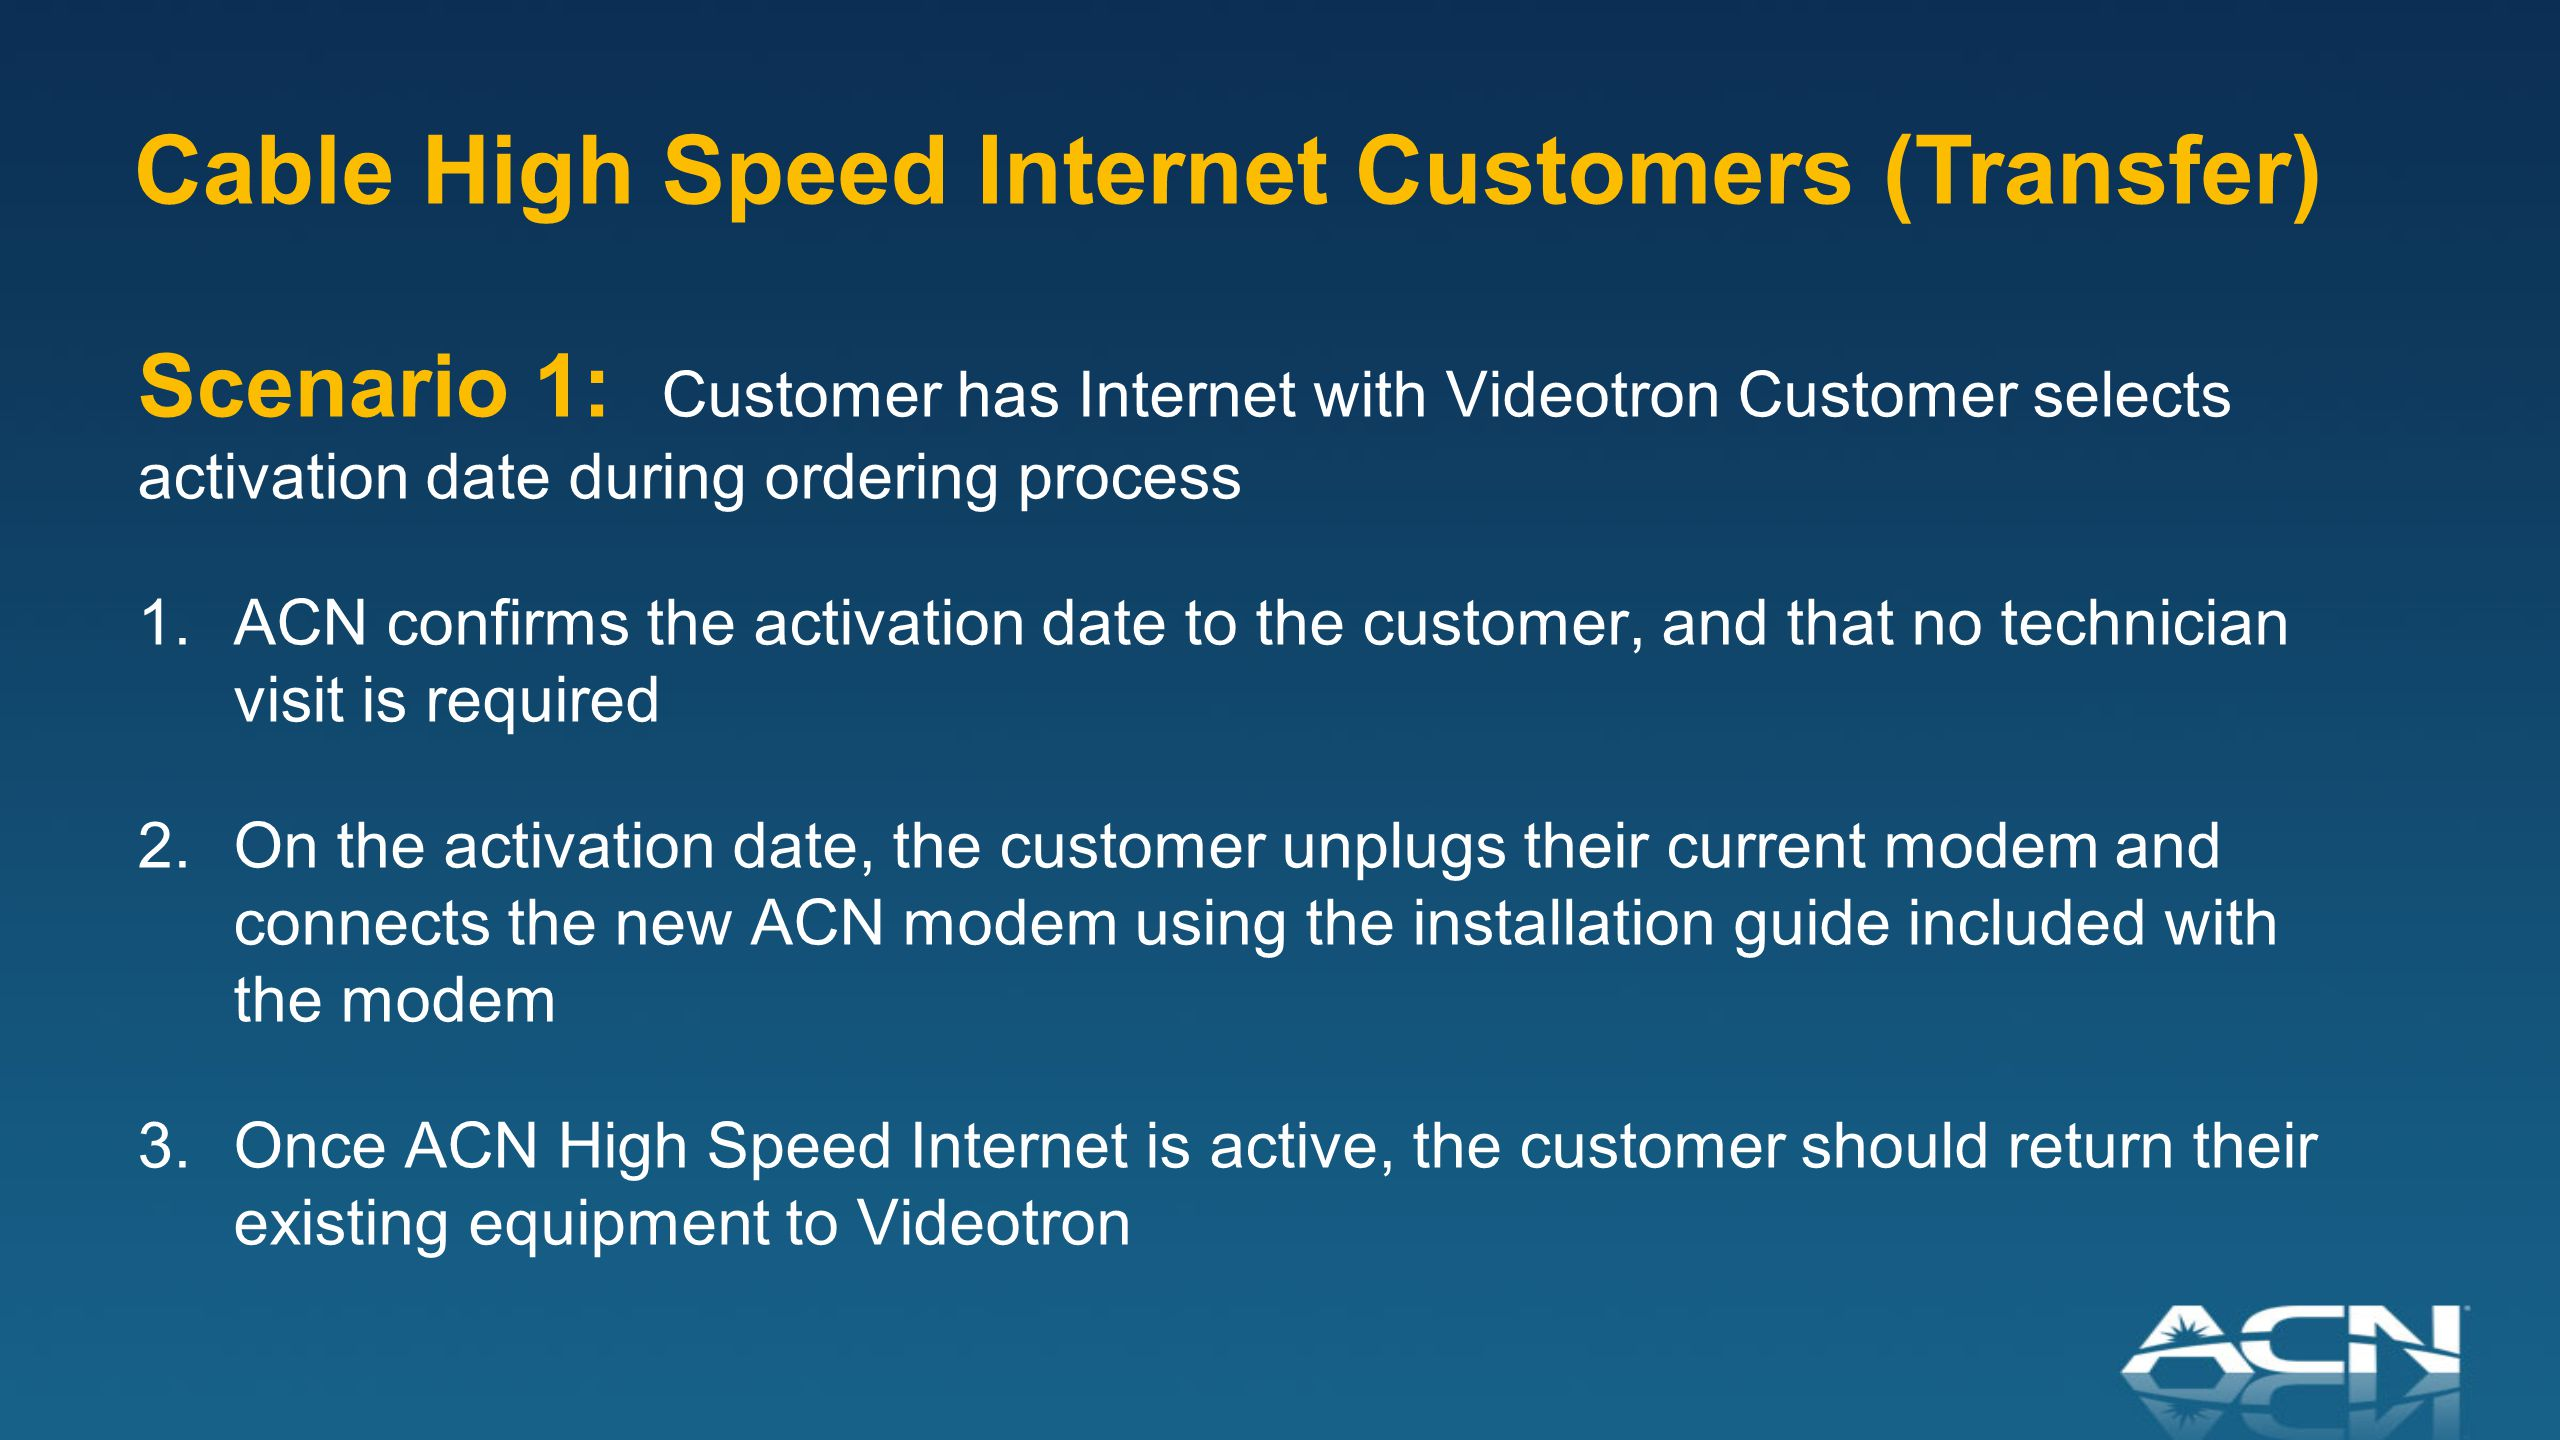 Scenario 1: Customer has Internet with Videotron Customer selects activation date during ordering process 1.ACN confirms the activation date to the customer, and that no technician visit is required 2.On the activation date, the customer unplugs their current modem and connects the new ACN modem using the installation guide included with the modem 3.Once ACN High Speed Internet is active, the customer should return their existing equipment to Videotron Cable High Speed Internet Customers (Transfer)